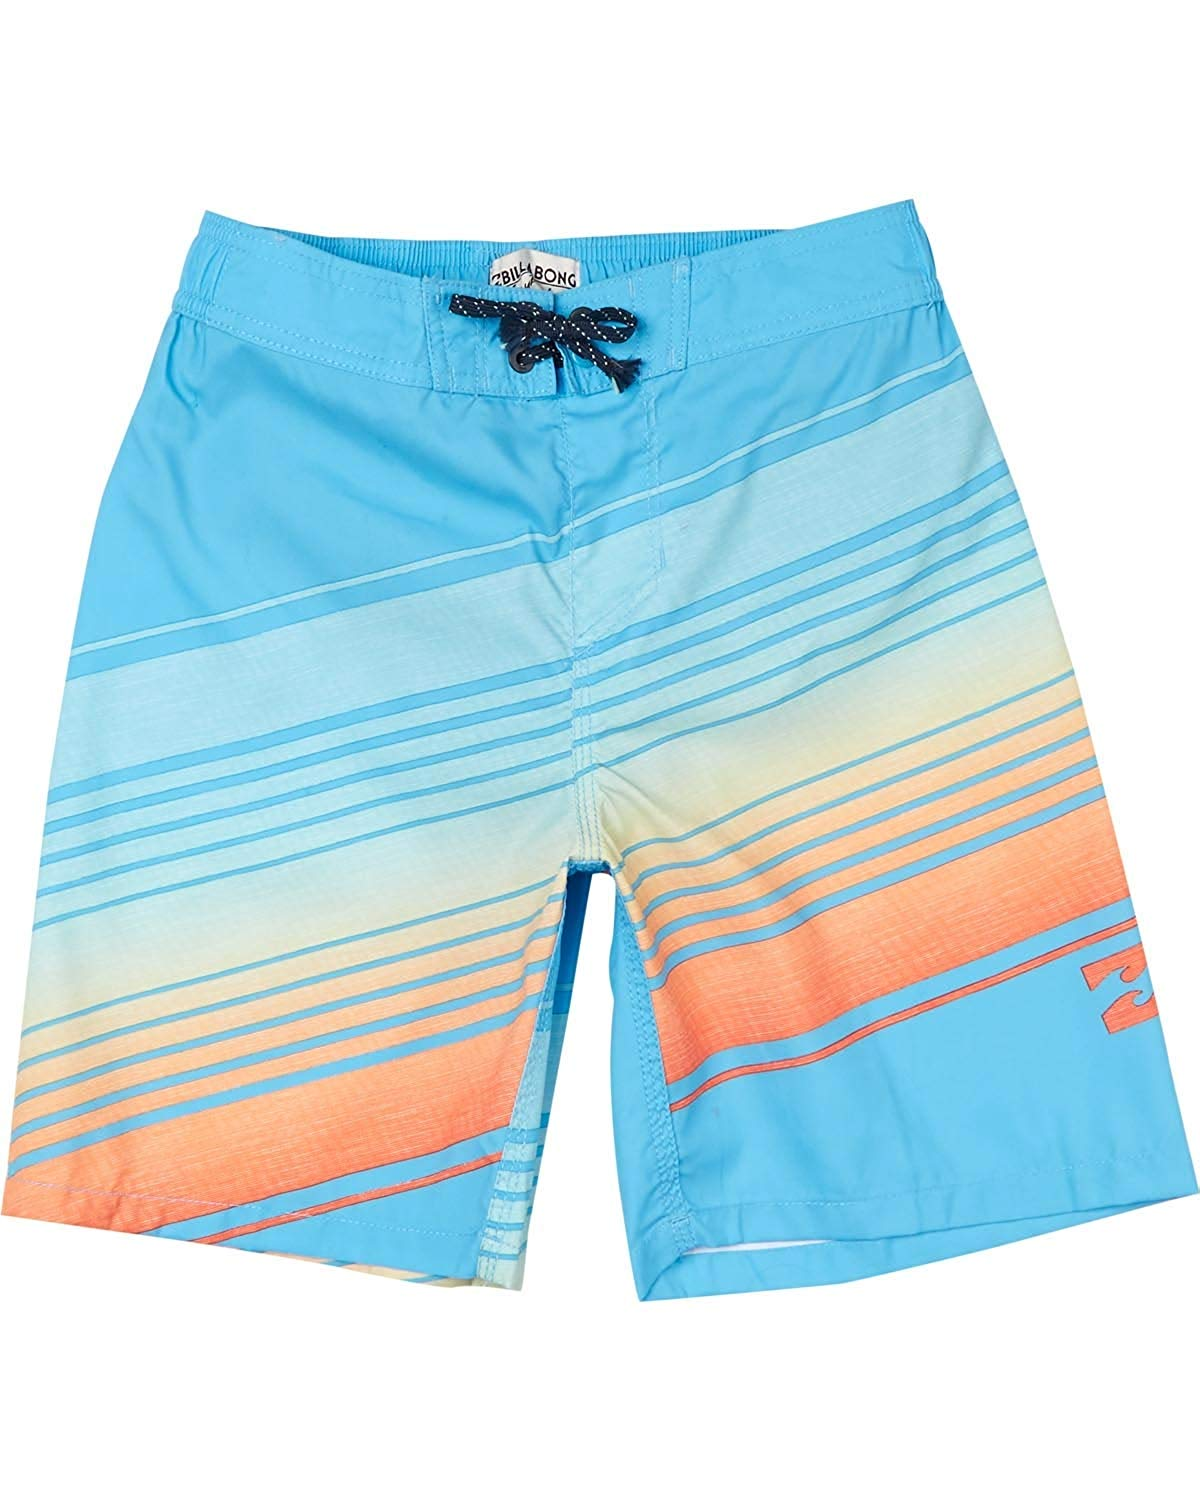 f40aad6c2c2e6 Cheap Hot Boys In Boardshorts, find Hot Boys In Boardshorts deals on ...